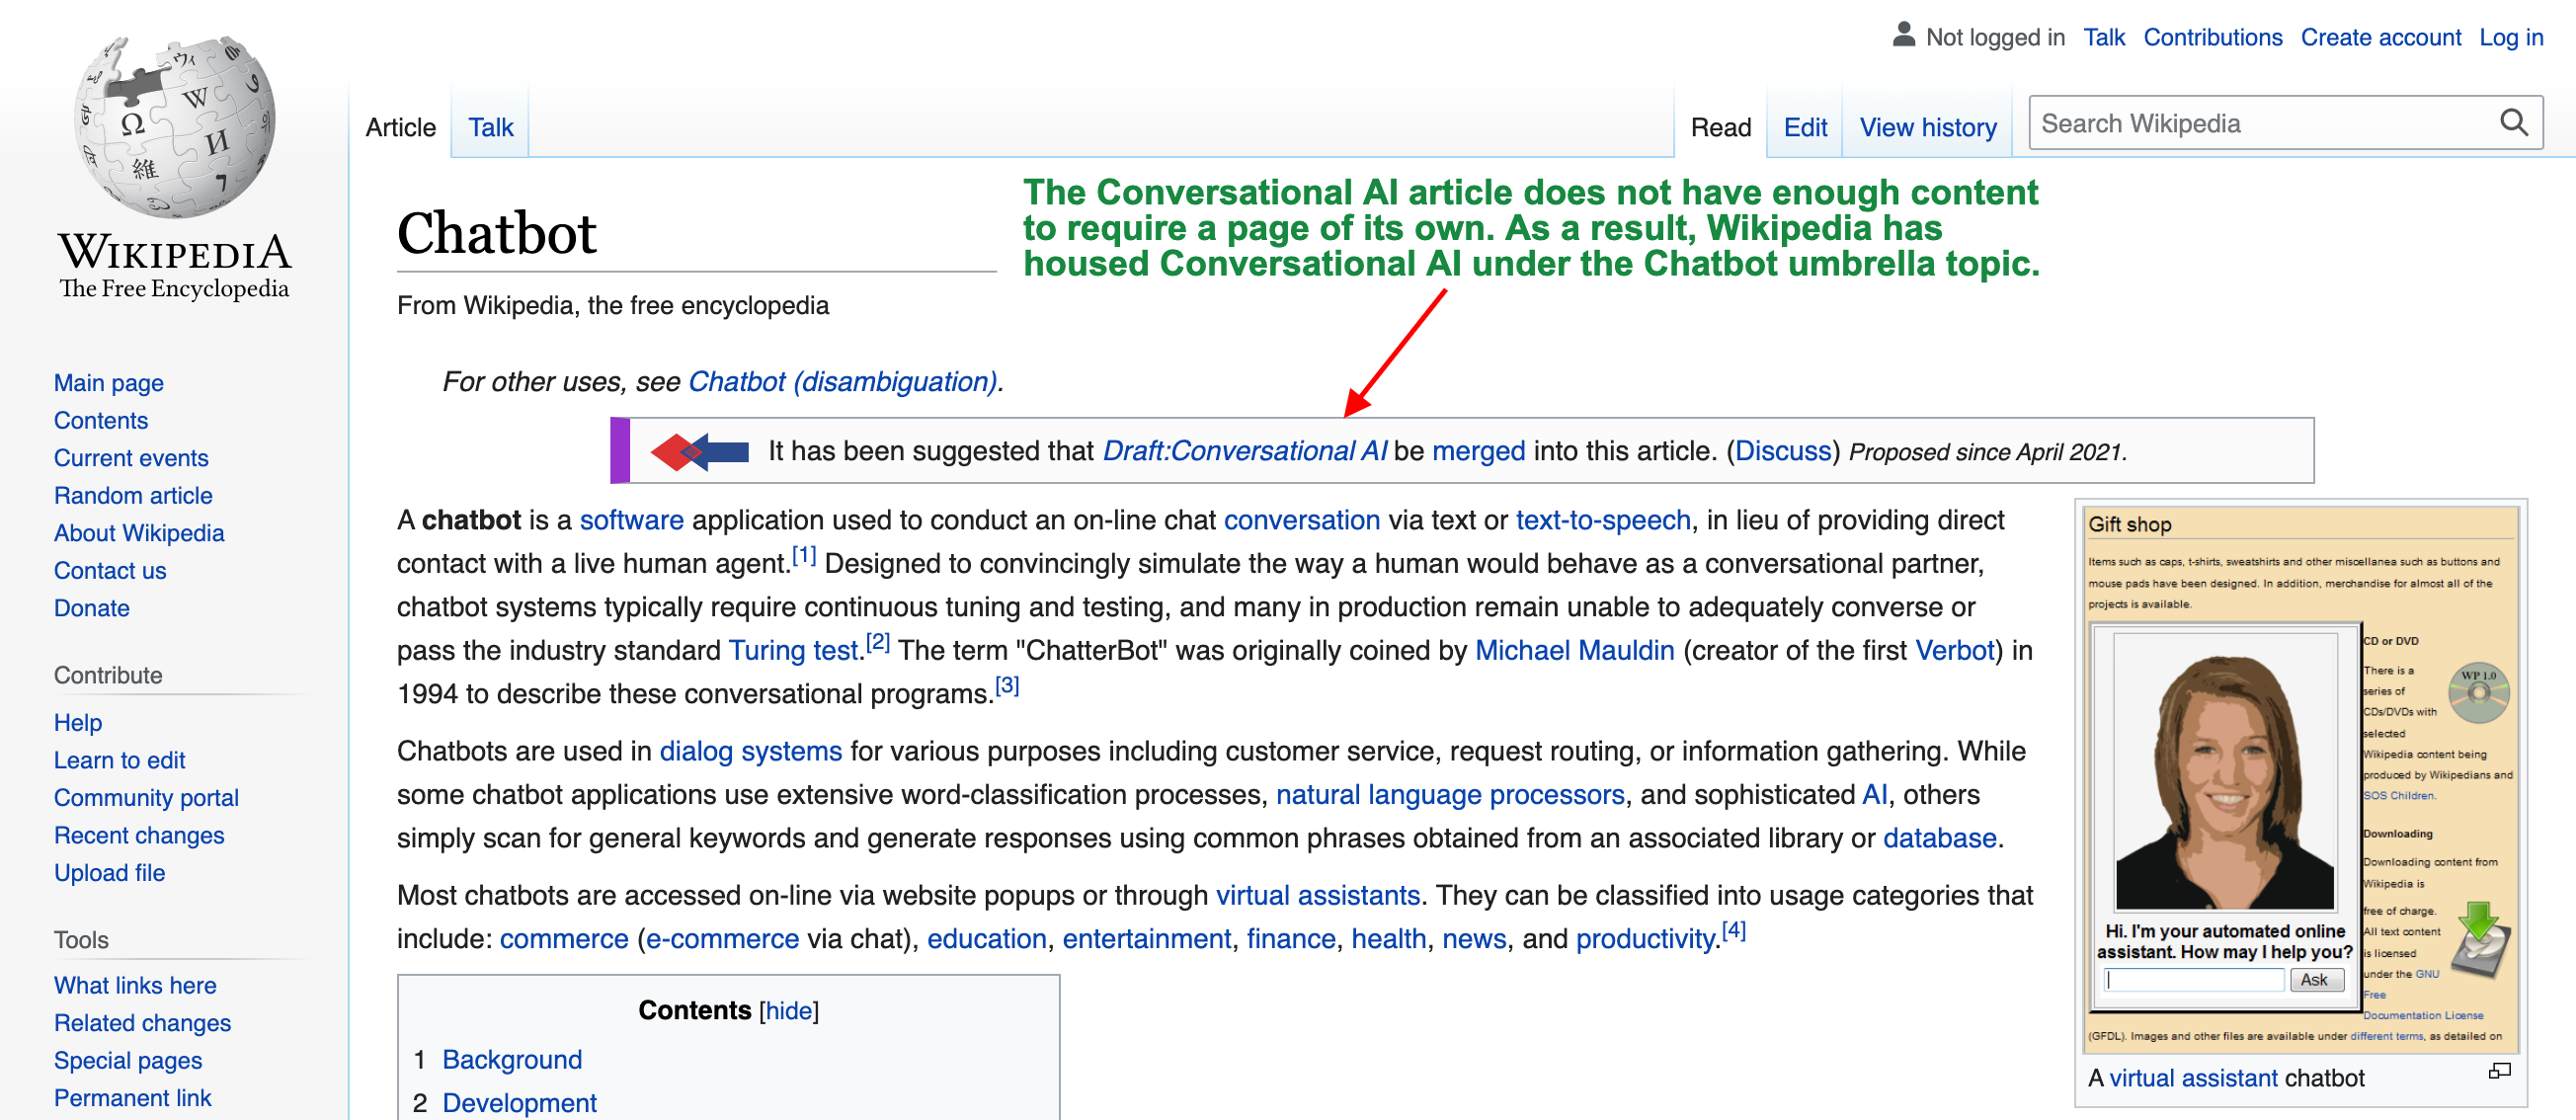 Wikipedia says that Conversational AI and Chatbots are too similar to have separate pages